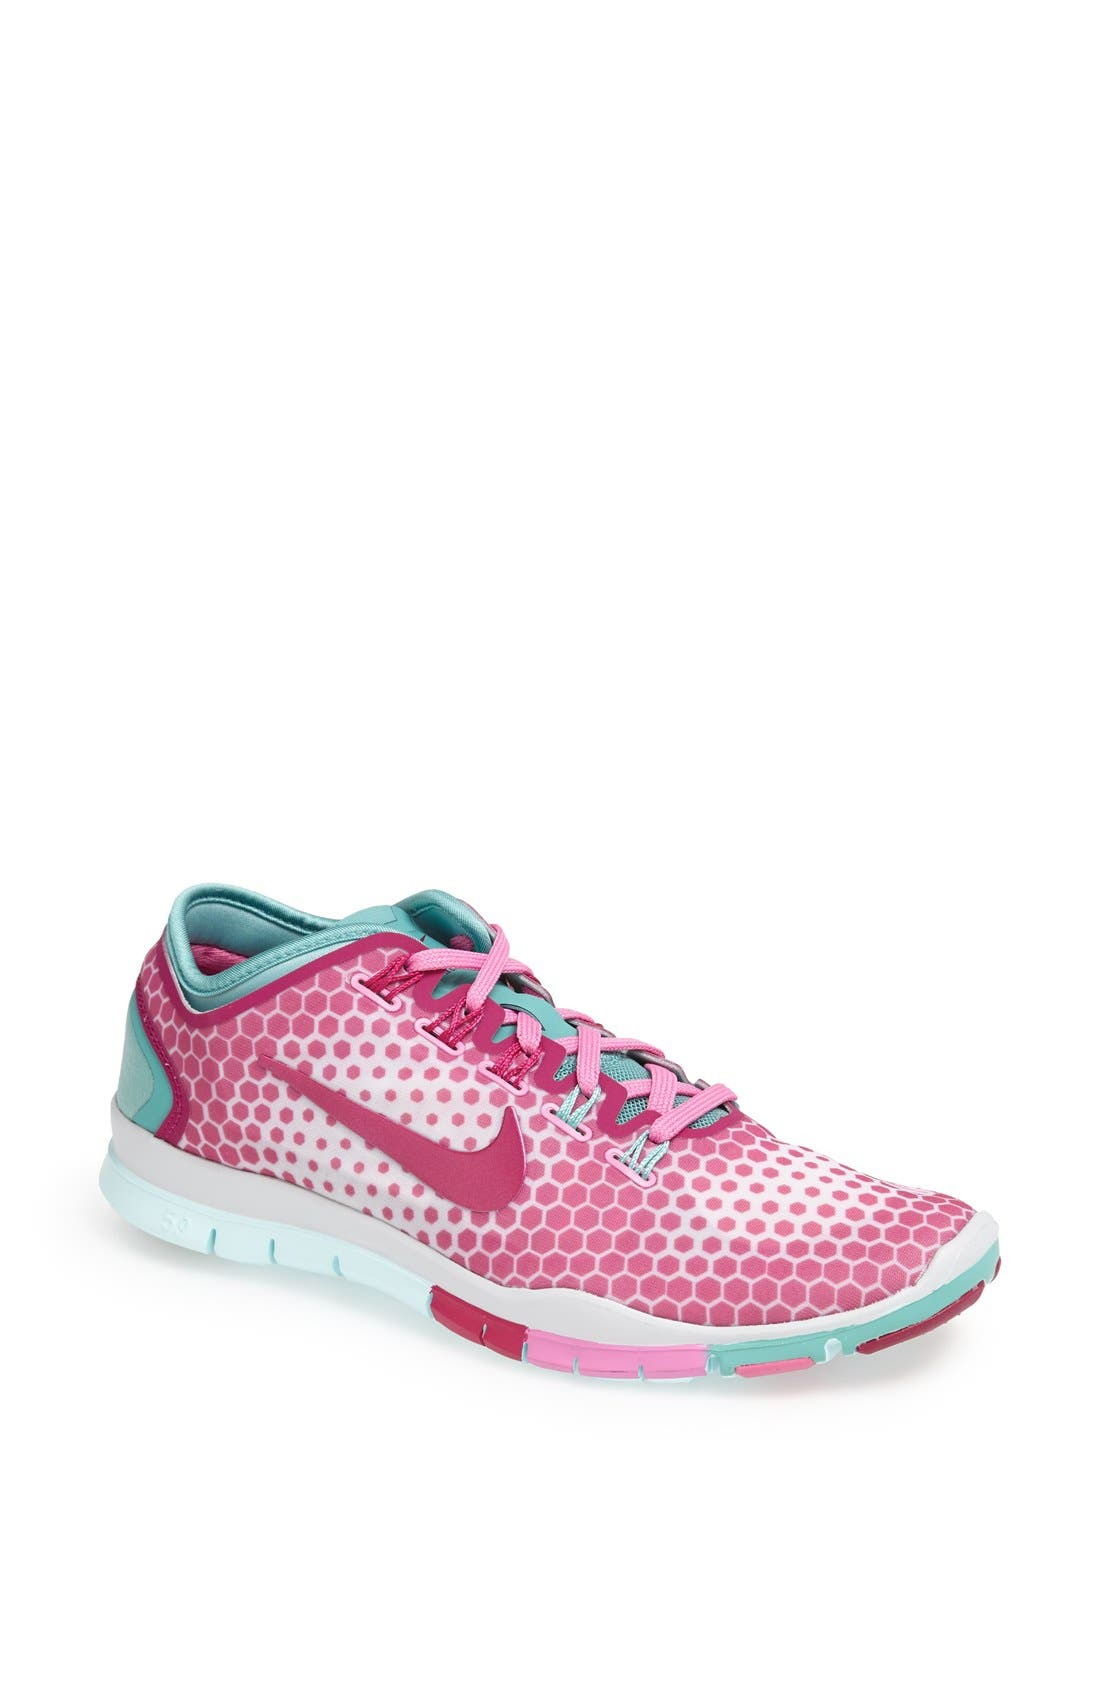 Main Image - Nike 'Free TR Connect 2' Training Shoe (Women)